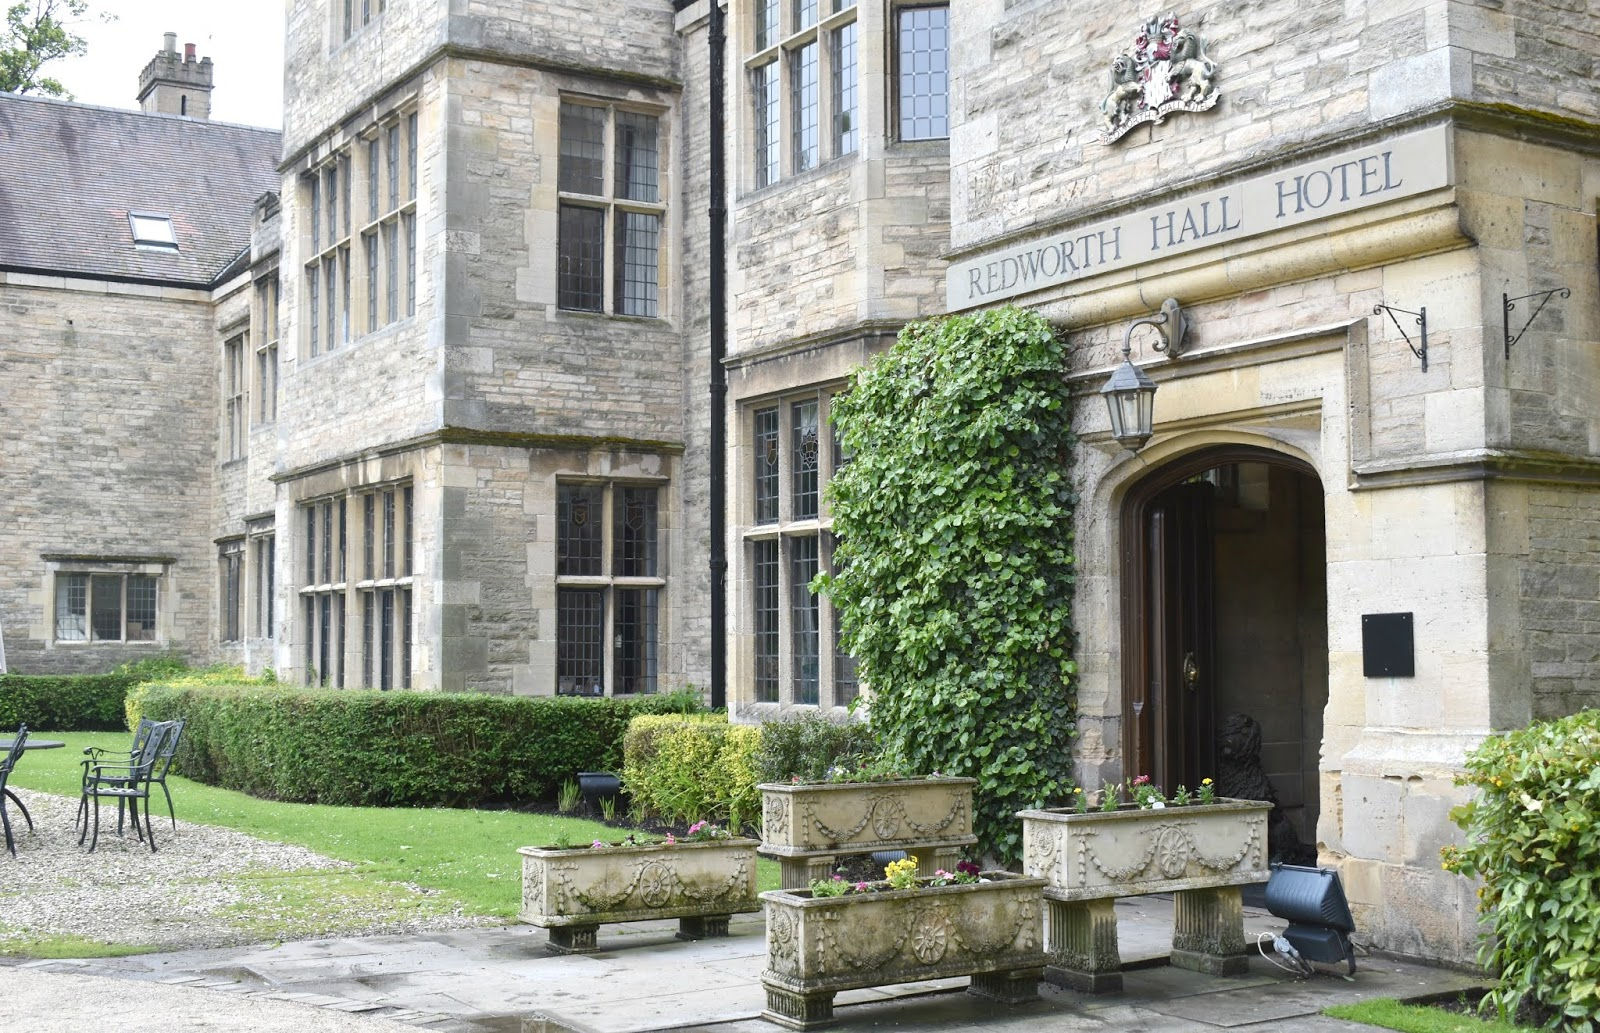 Redworth Hall Hotel Review